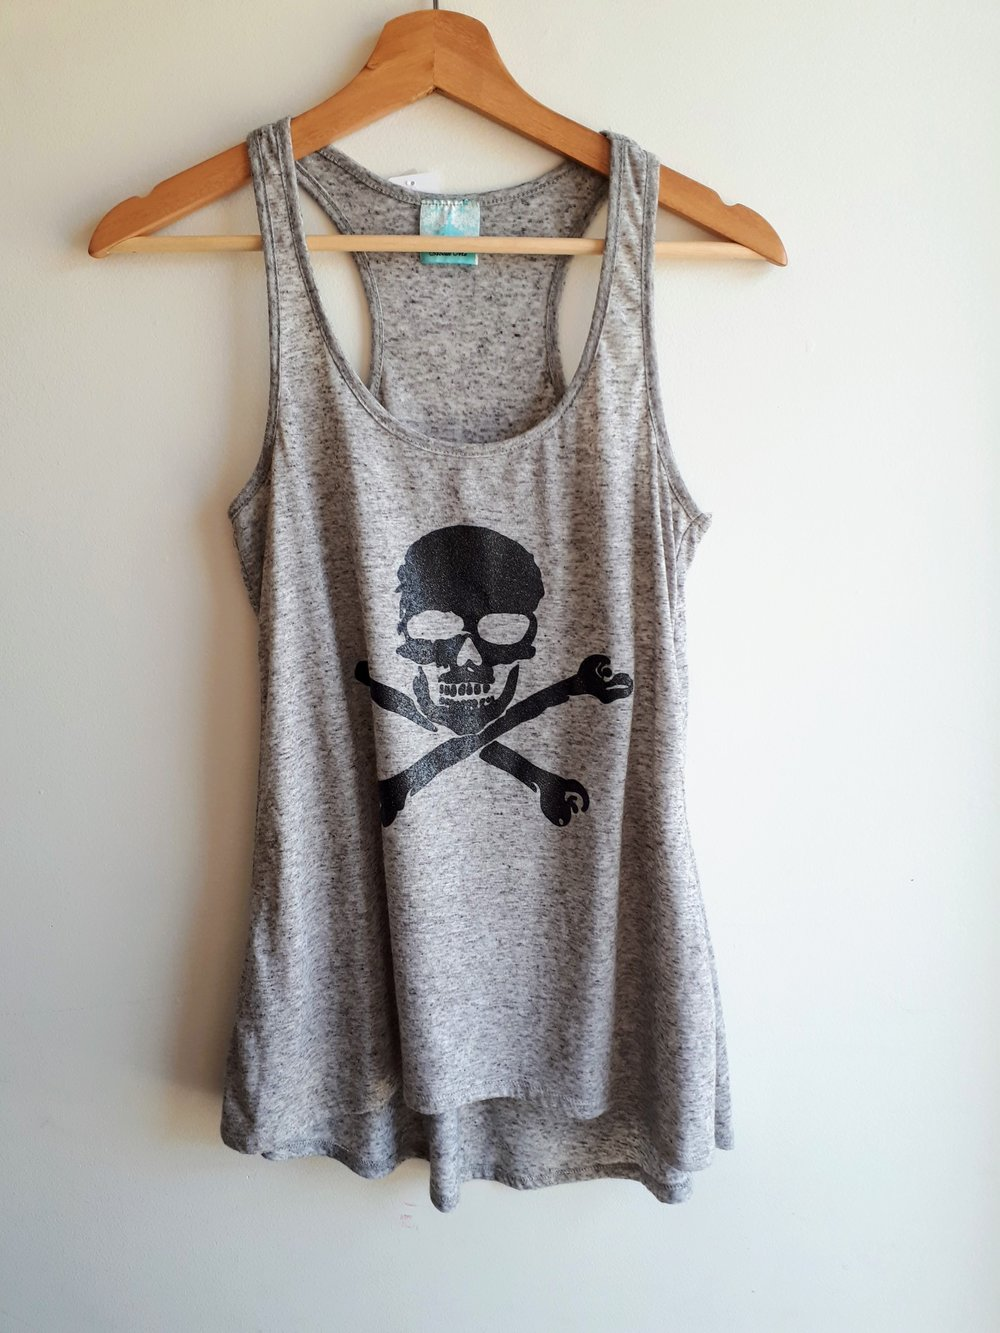 Enough About Me tank; Size S, $16